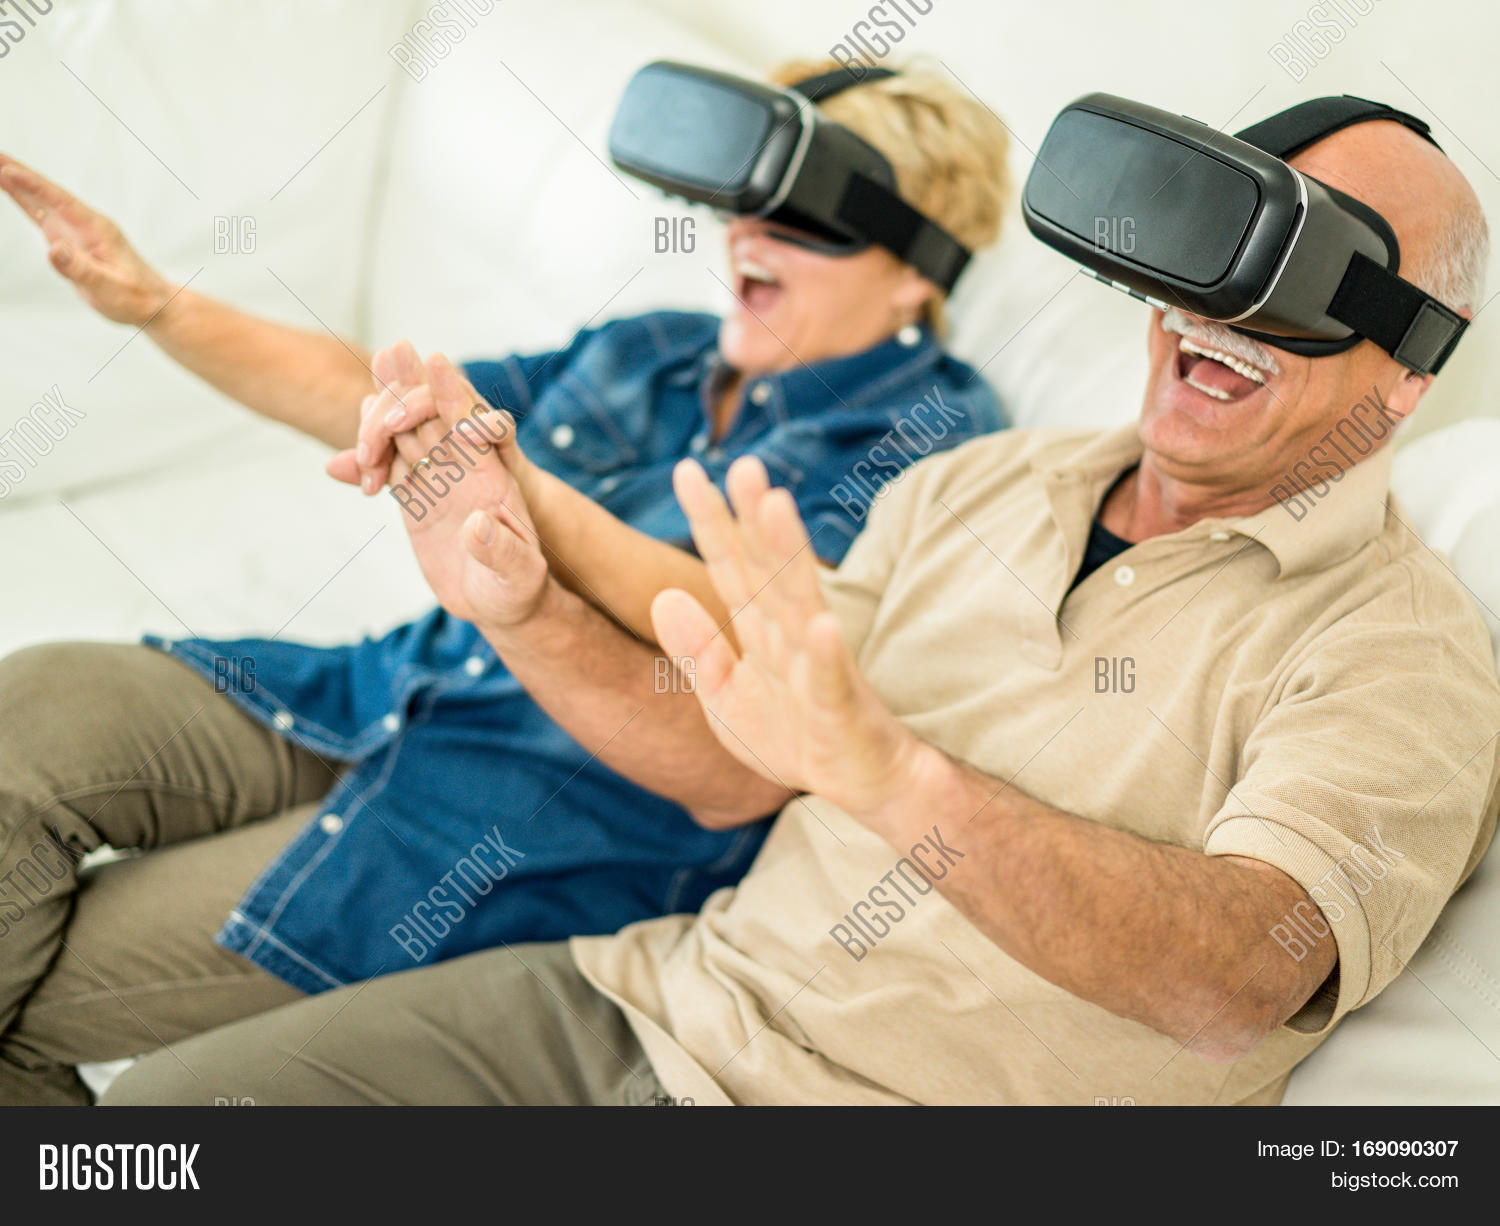 c5b3863d61d Senior mature couple having fun with virtual reality glasses - Old people  using new vr headset